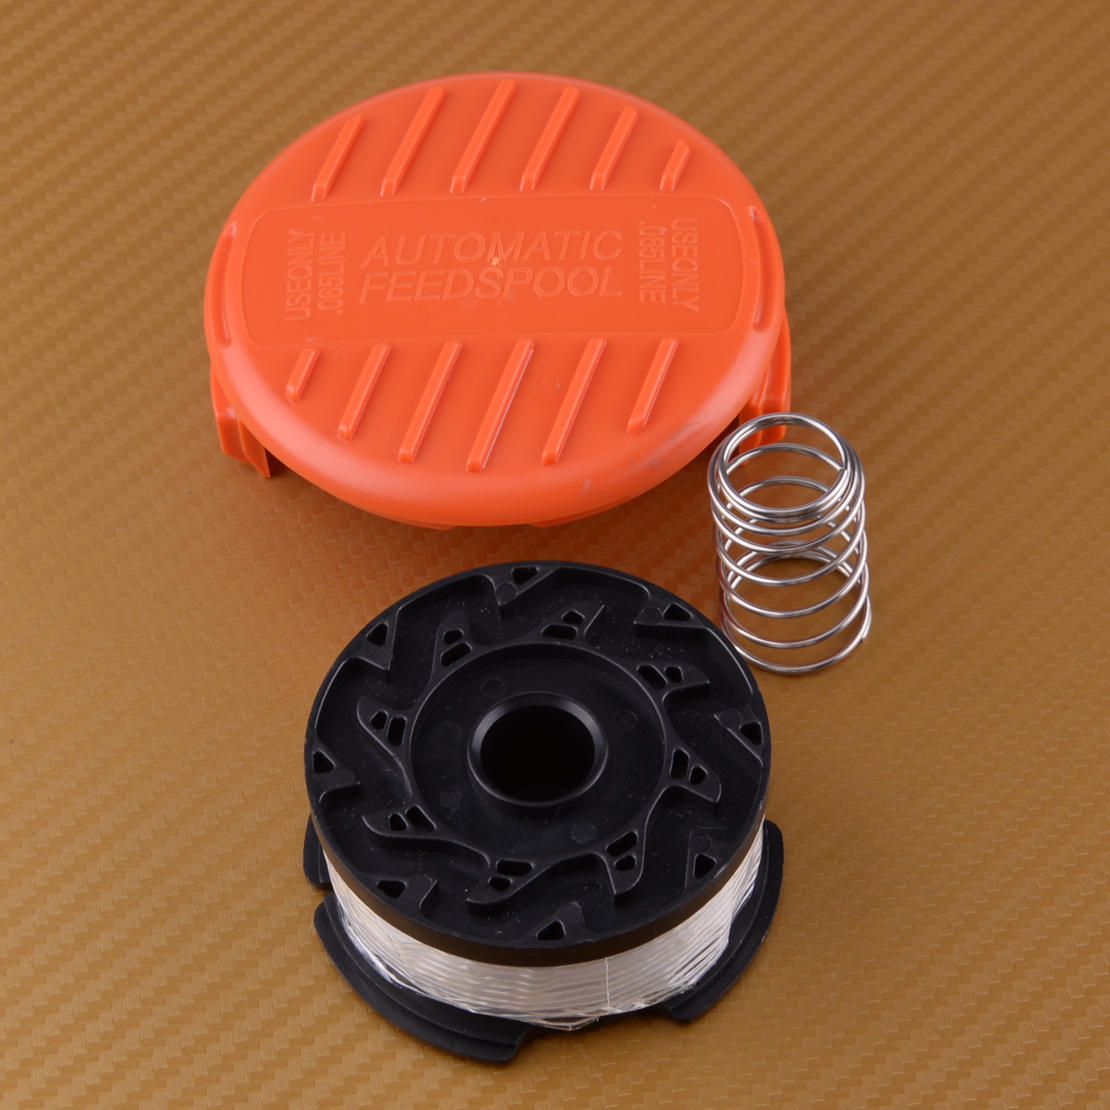 US $9 89 34% OFF|Trimmer Line & Spool Cap Spring Fit for BLACK&DECKER GH400  GH500 GH600 GH612 GH900 ST6600 ST7000 ST7700 CST1000 CST1200-in Tool Parts